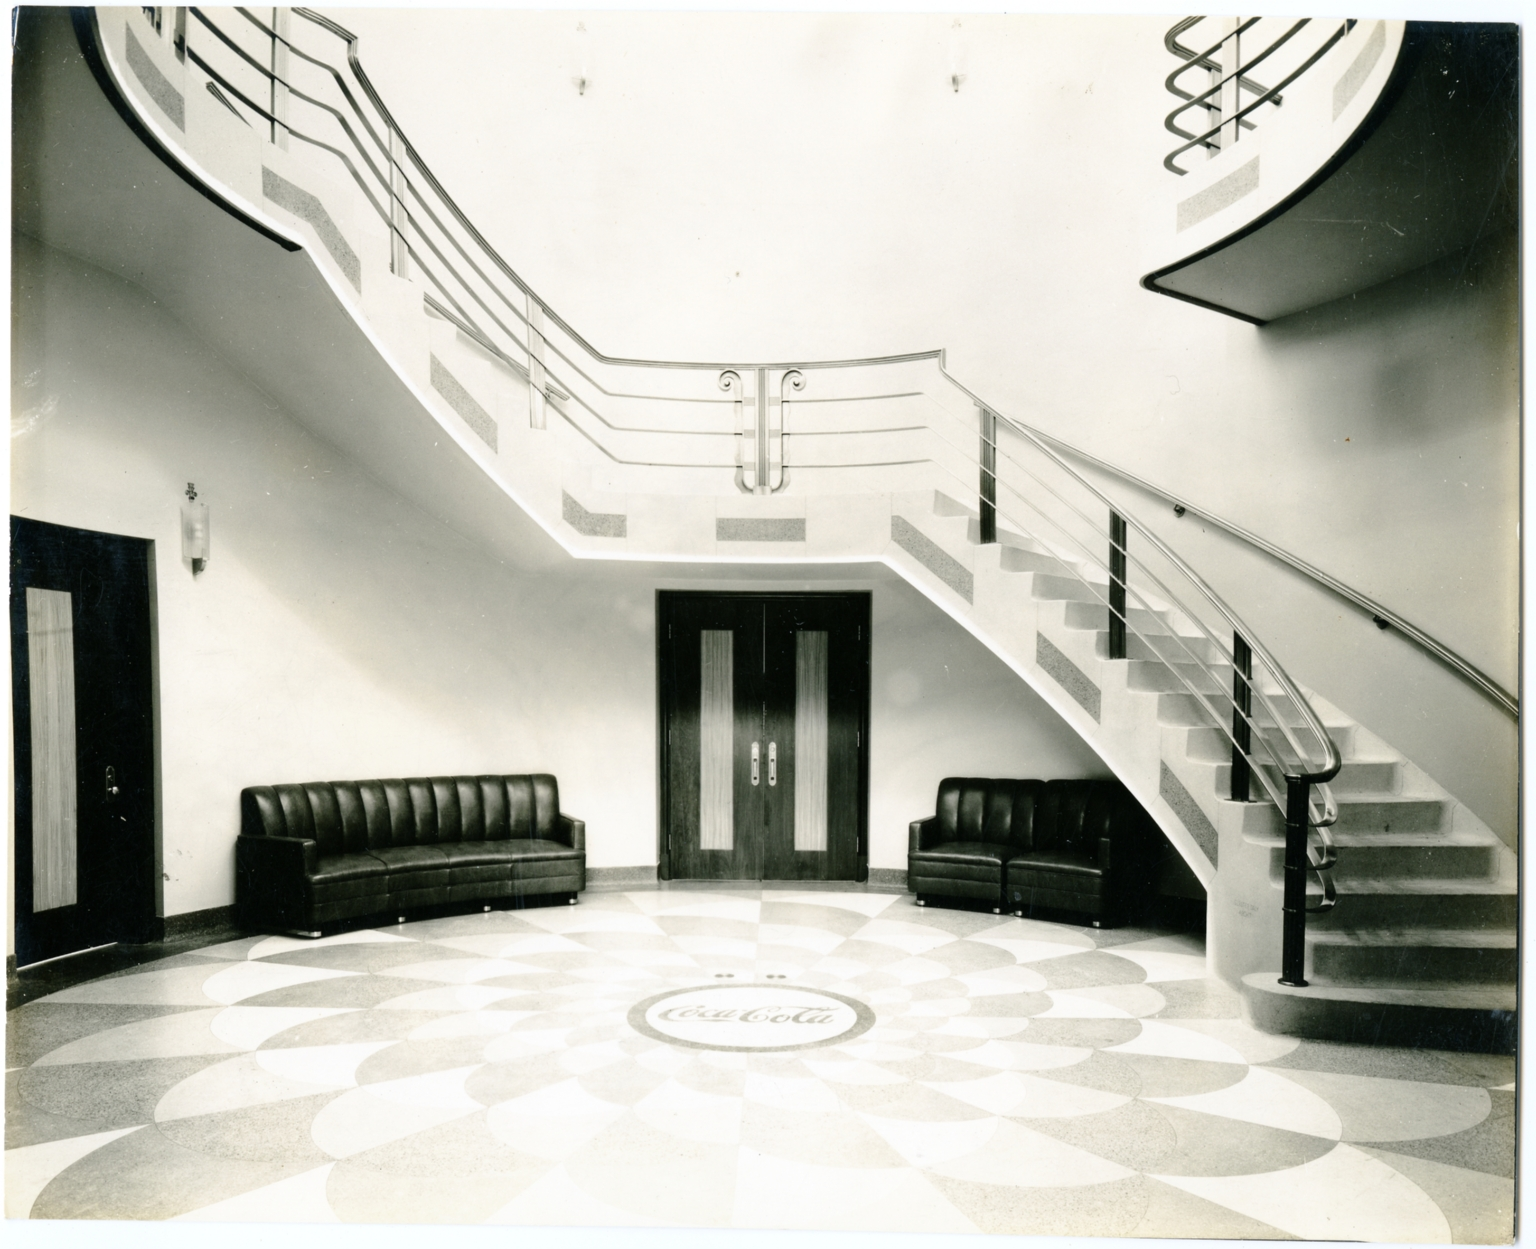 Lobby of the Coca-Cola Building